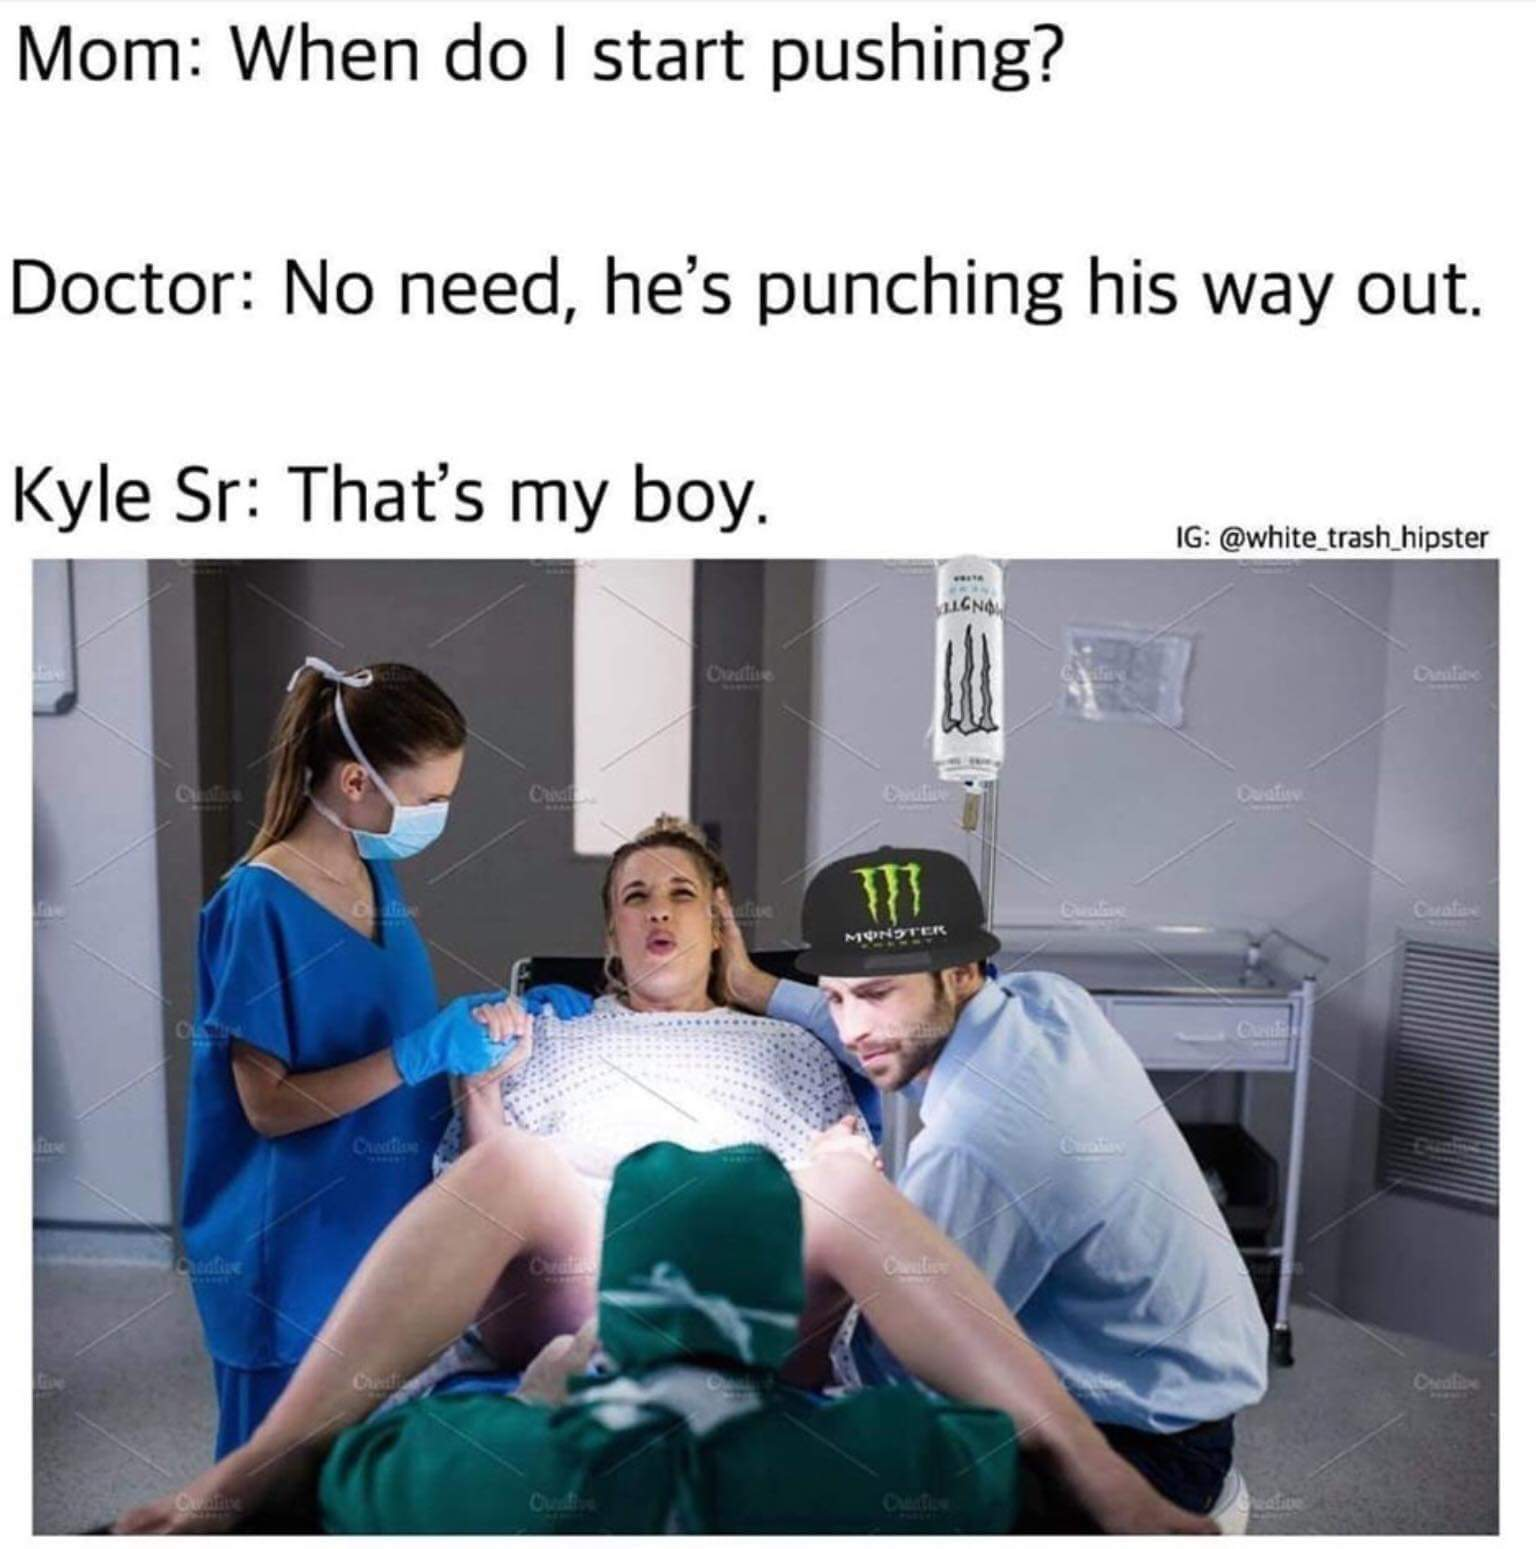 That's my boy kyle - meme